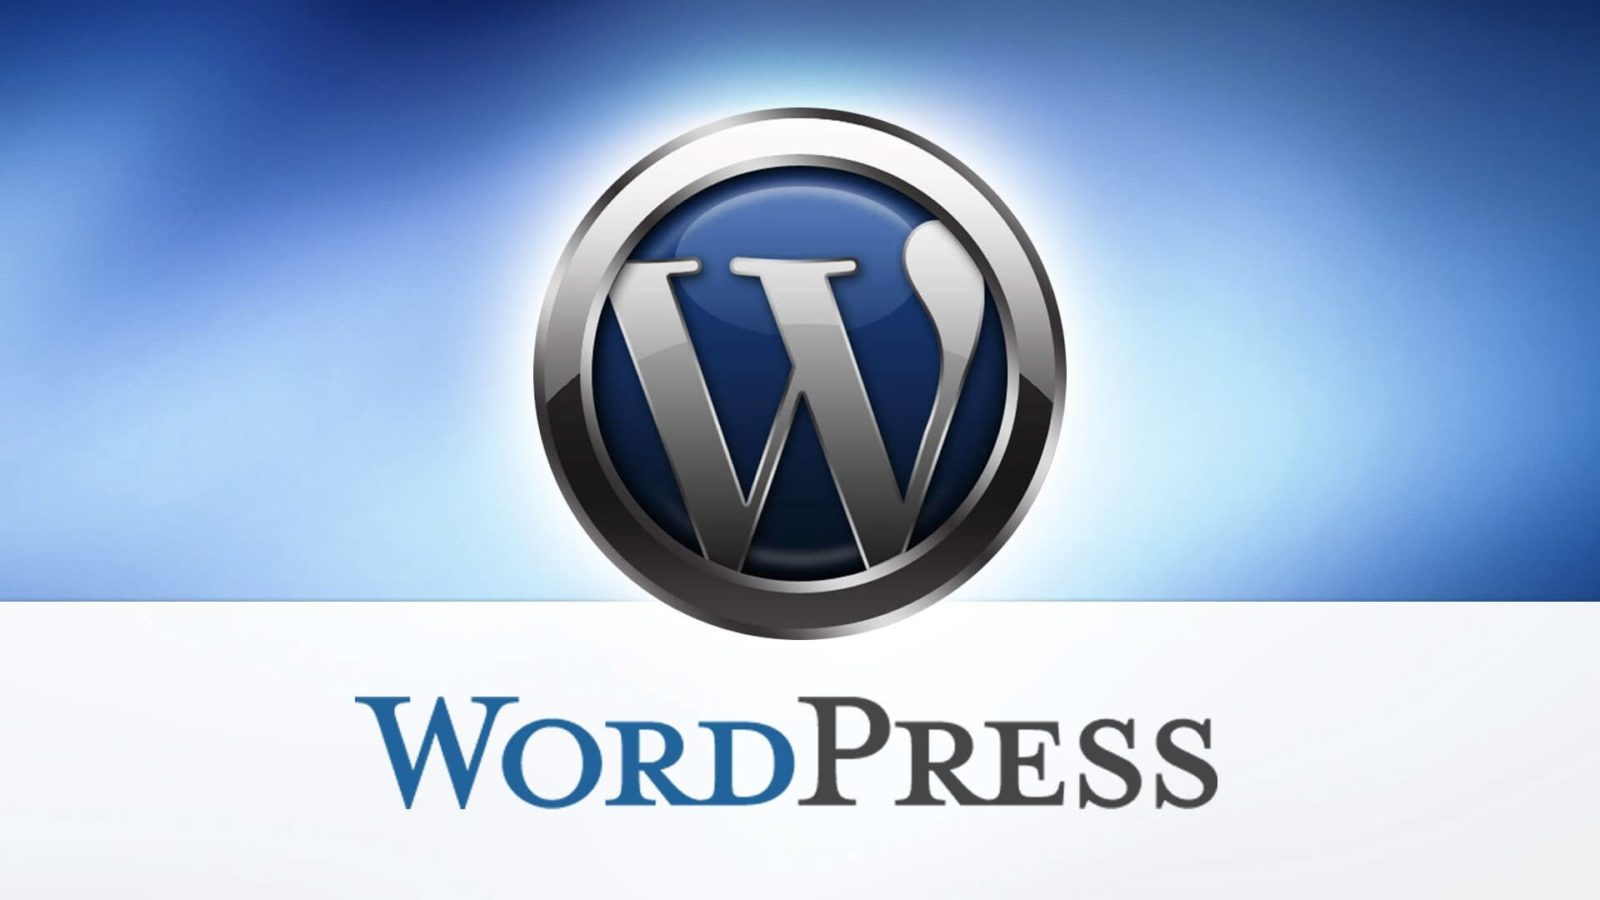 Windows'a WordPress programı geldi! Hemen indirin!